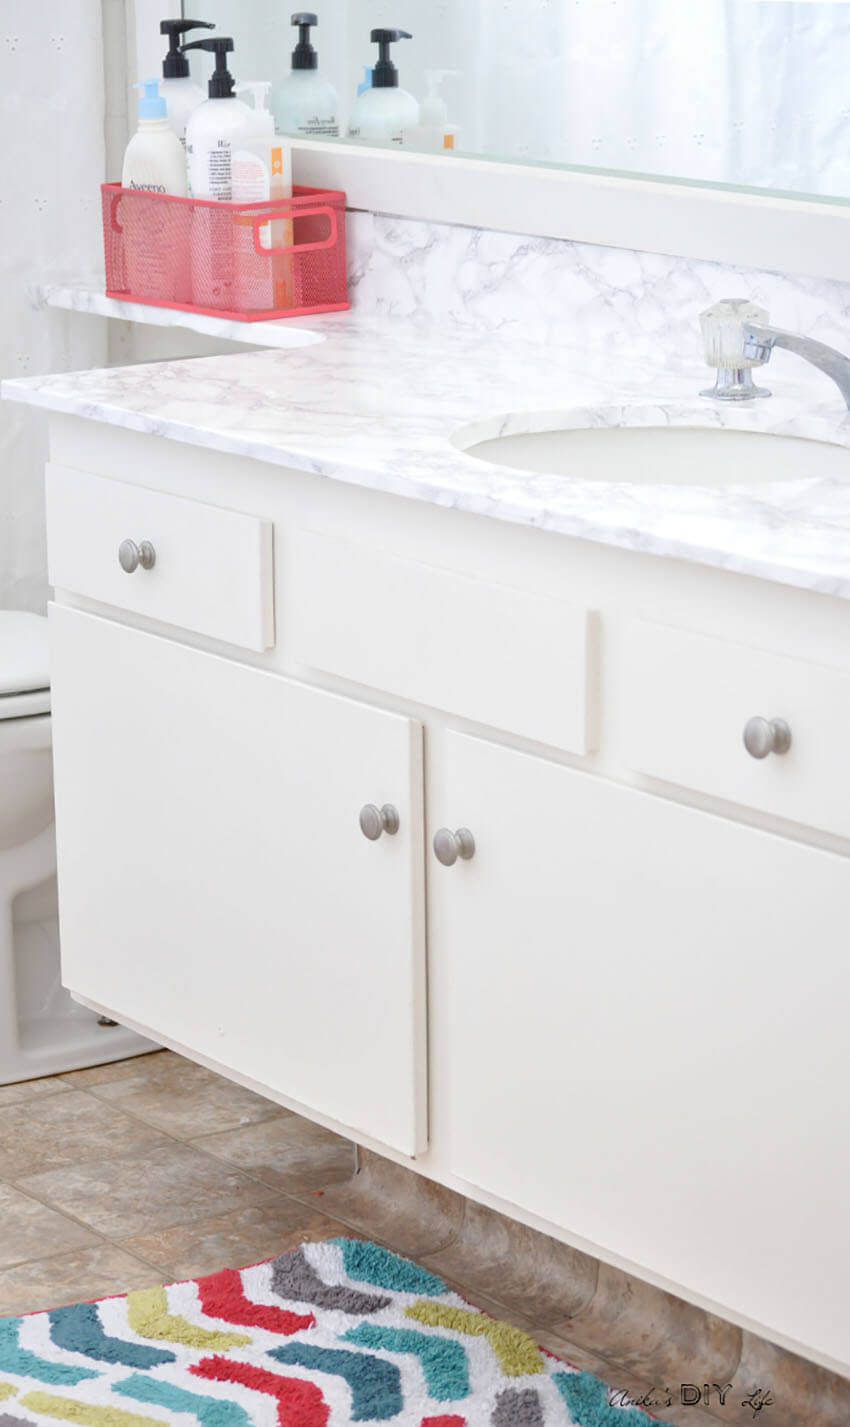 Bathroom countertops can benefit from the makeover, too!